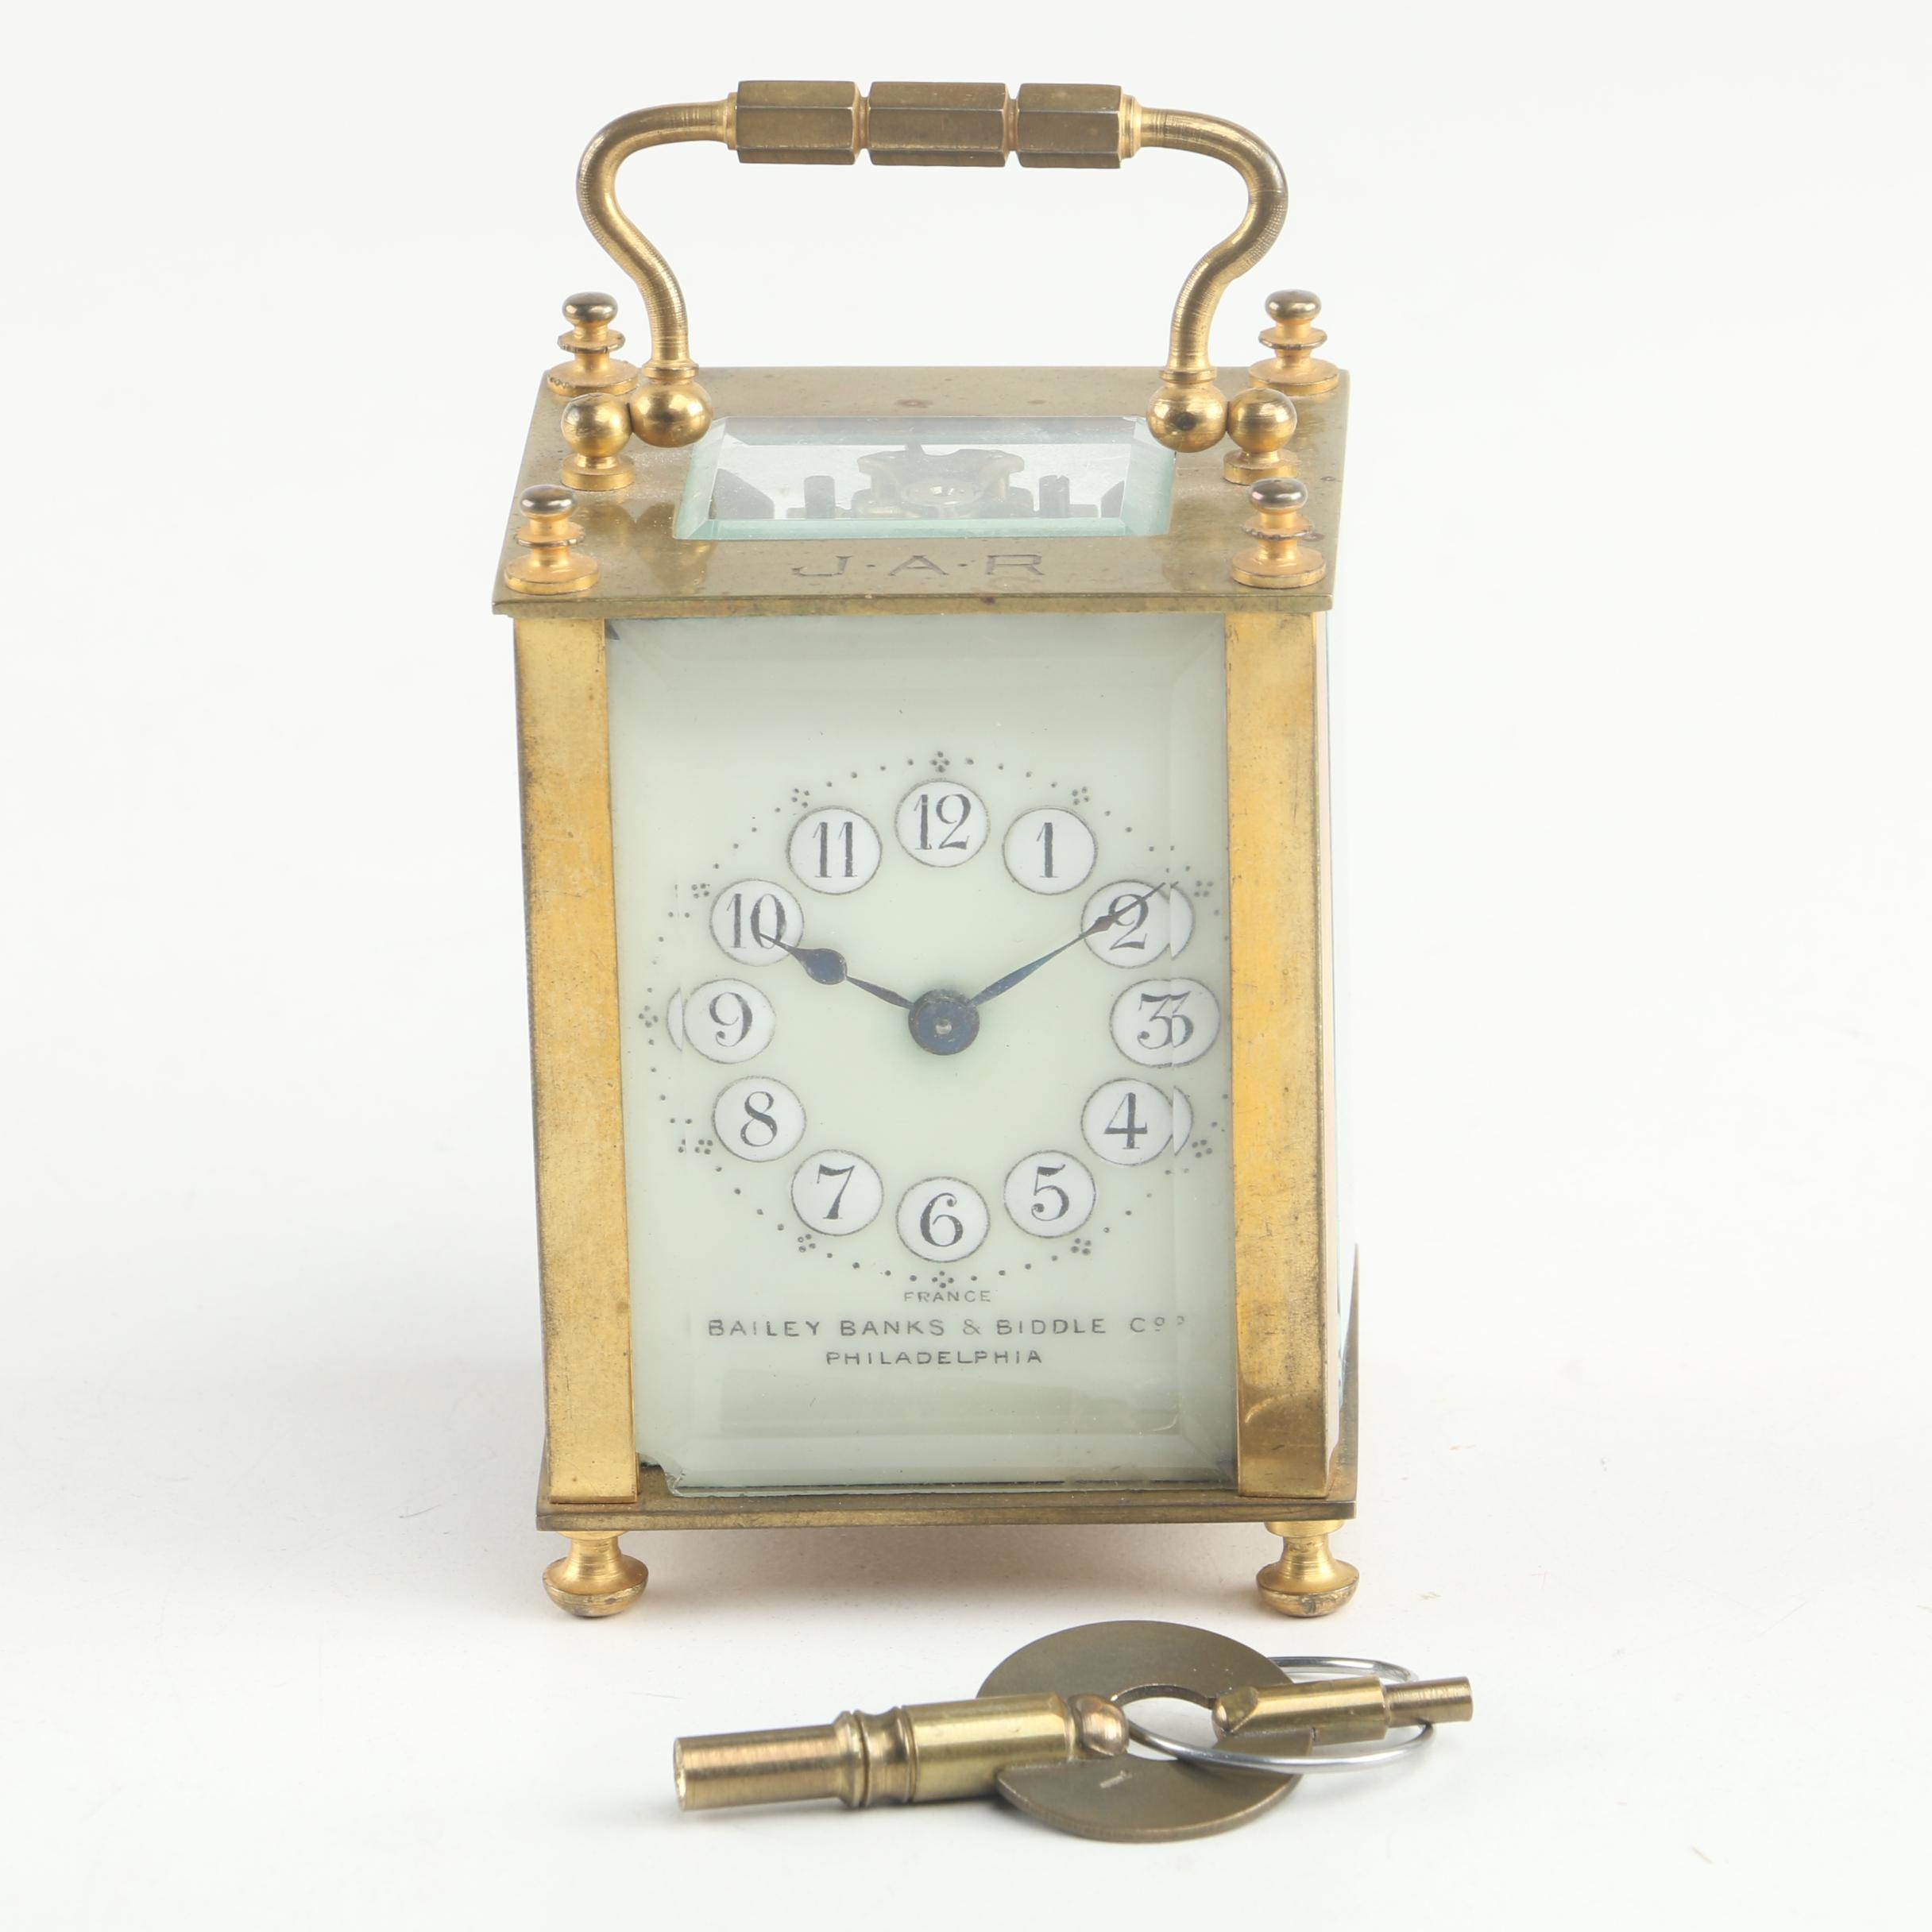 Antique French Dulverdry & Bloquel Carriage Clock for Bailey Banks & Biddle Co.